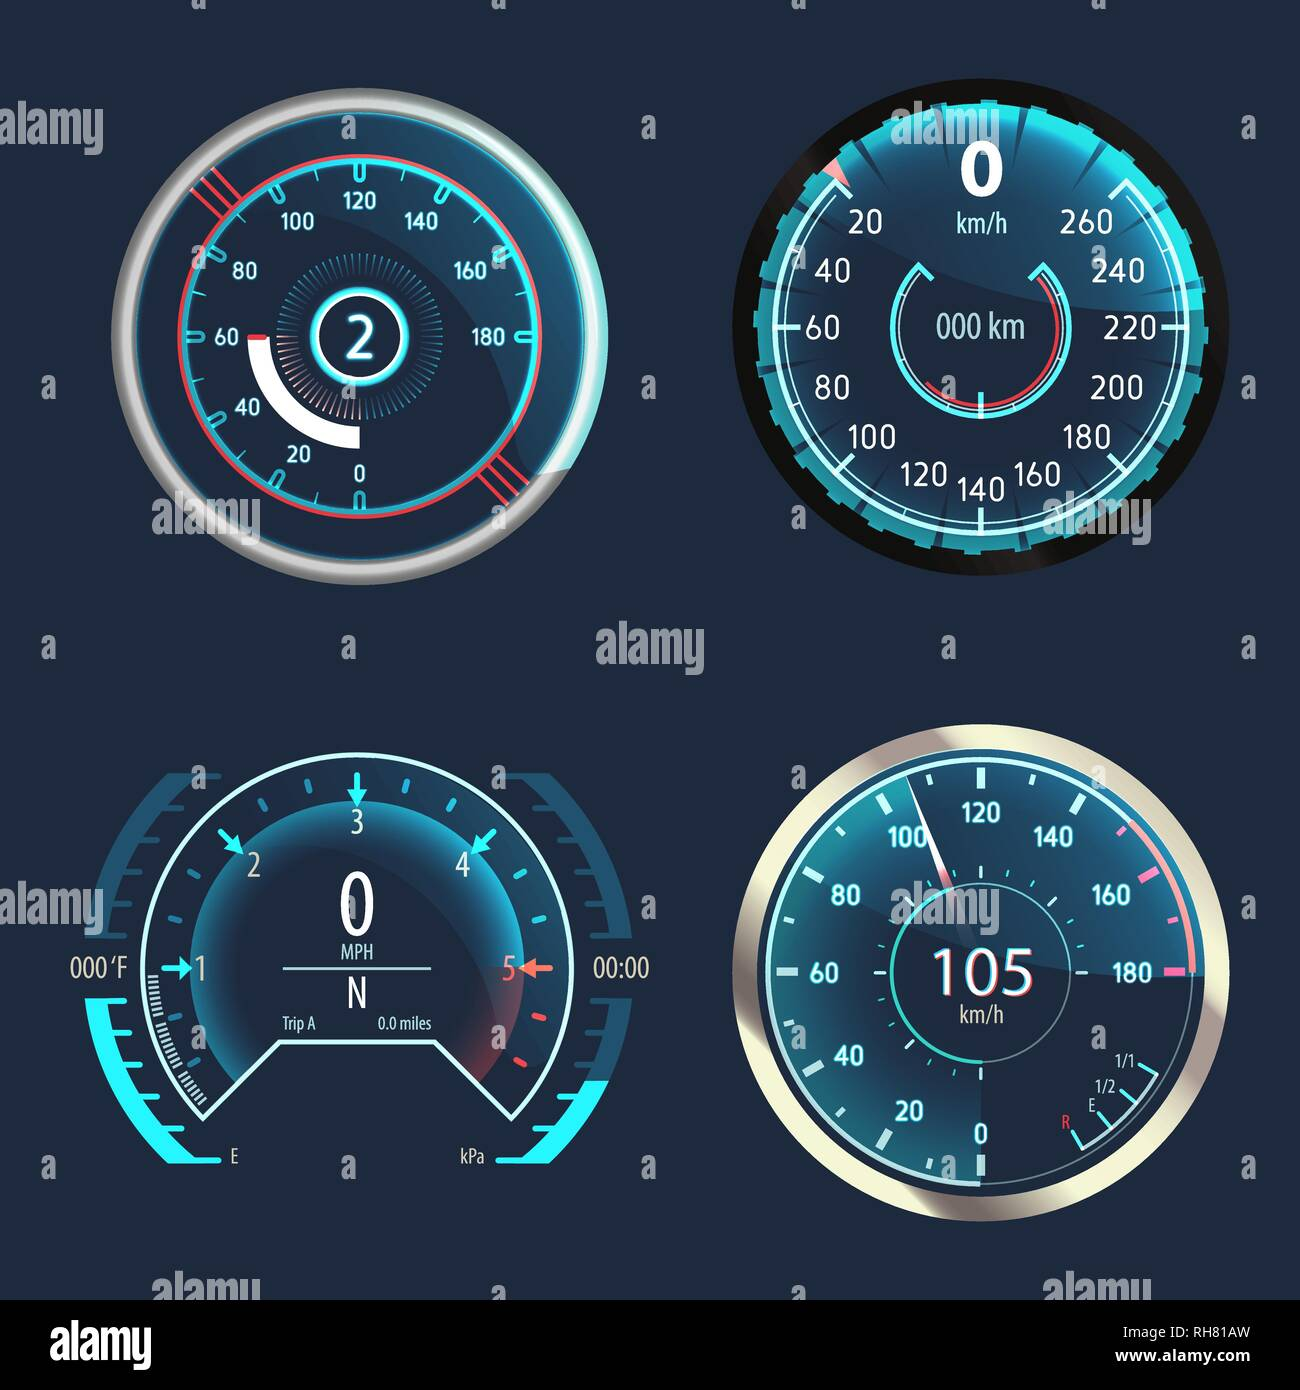 Odometer Stock Photos & Odometer Stock Images - Alamy